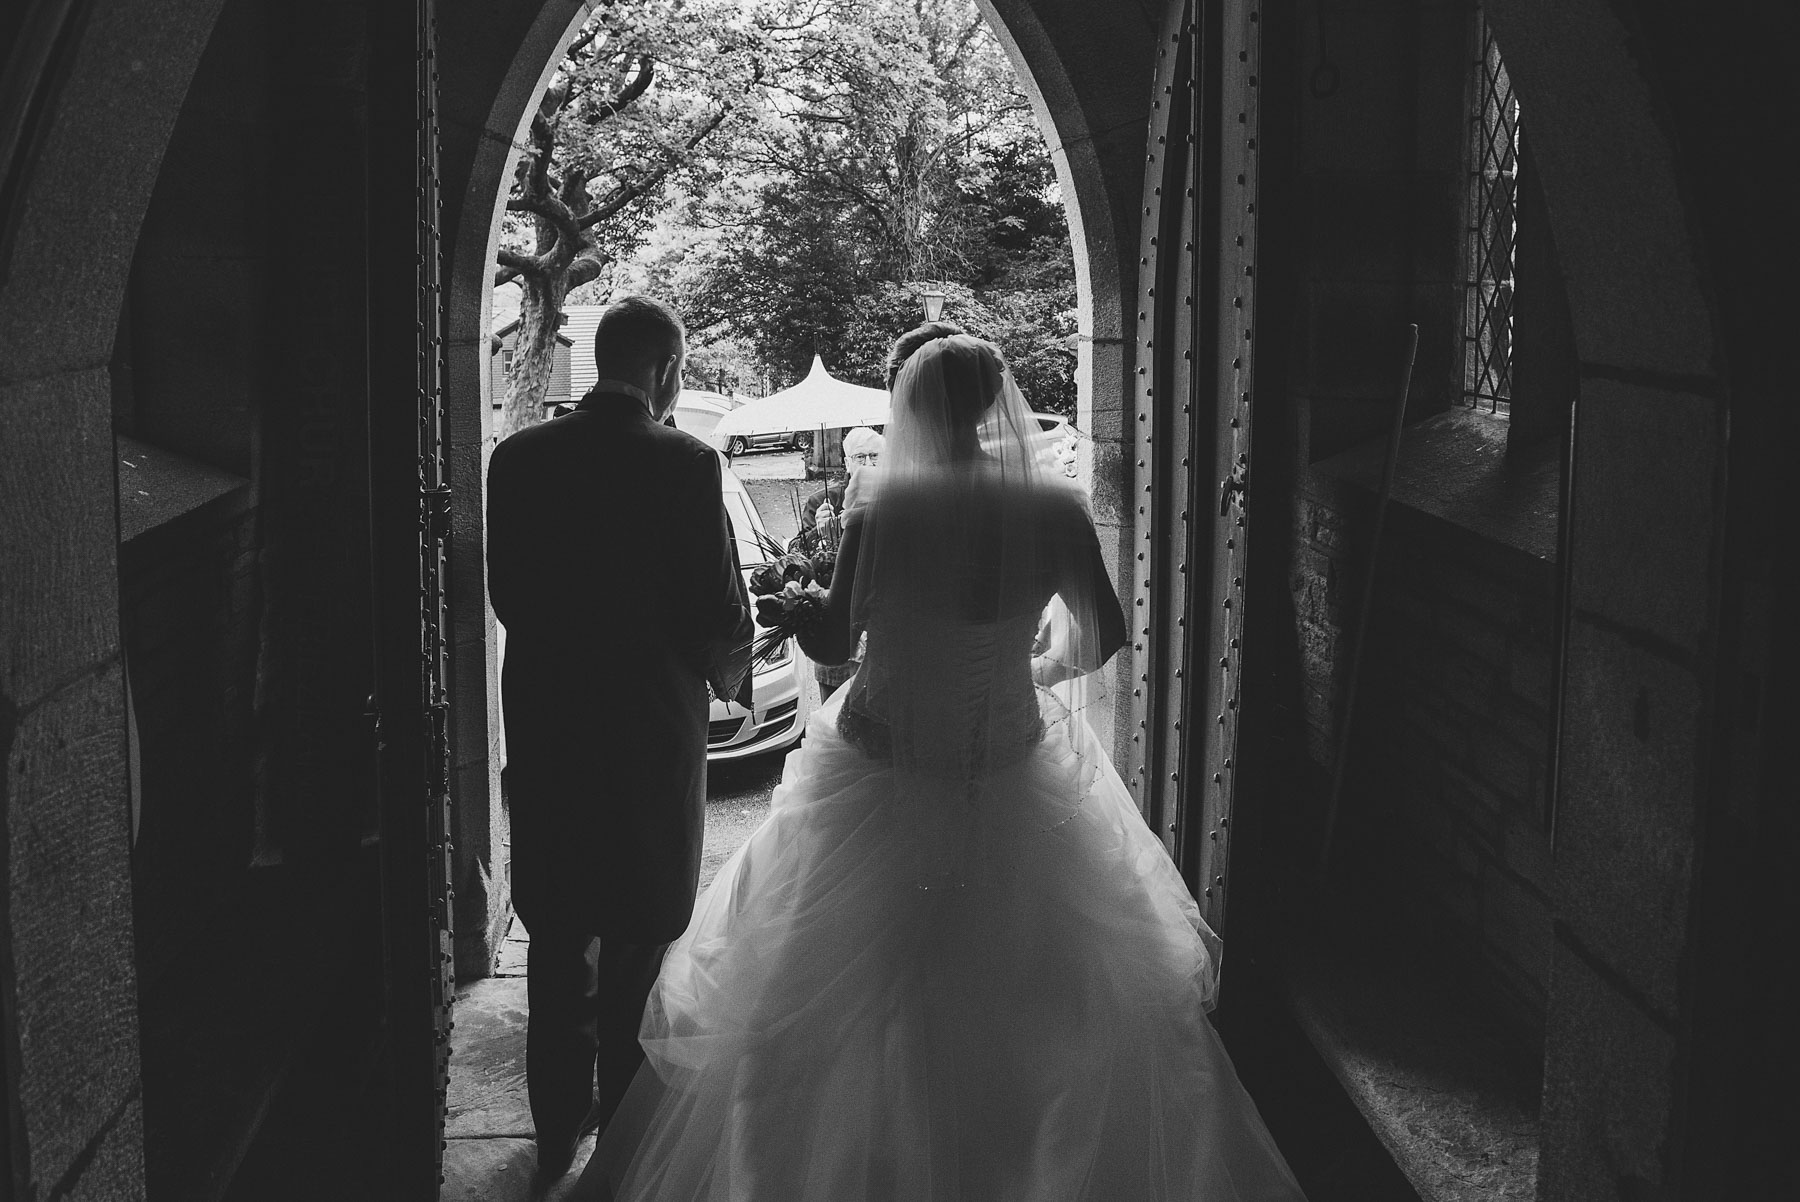 Bride and groom leave church after getting married in Saddleworth